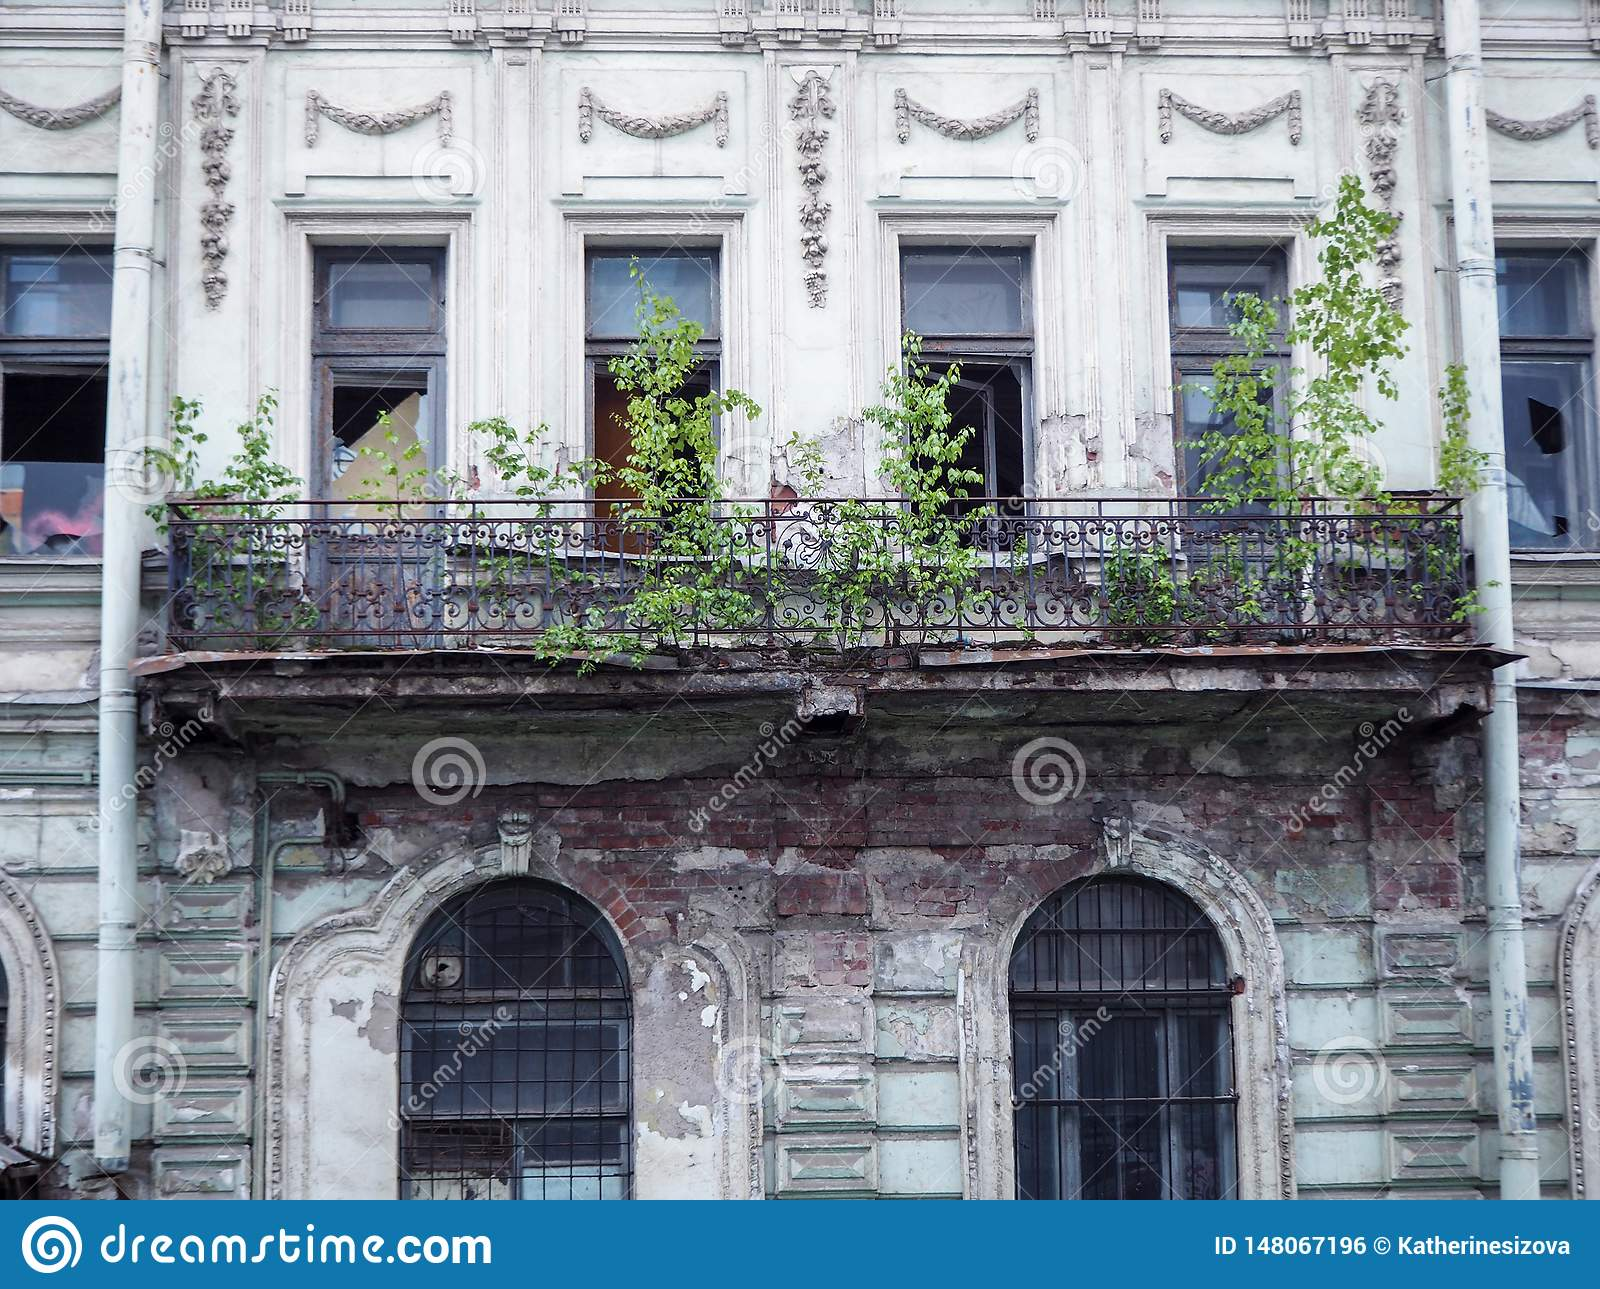 Beautiful old abandoned building with broken windows and a ruined balcony